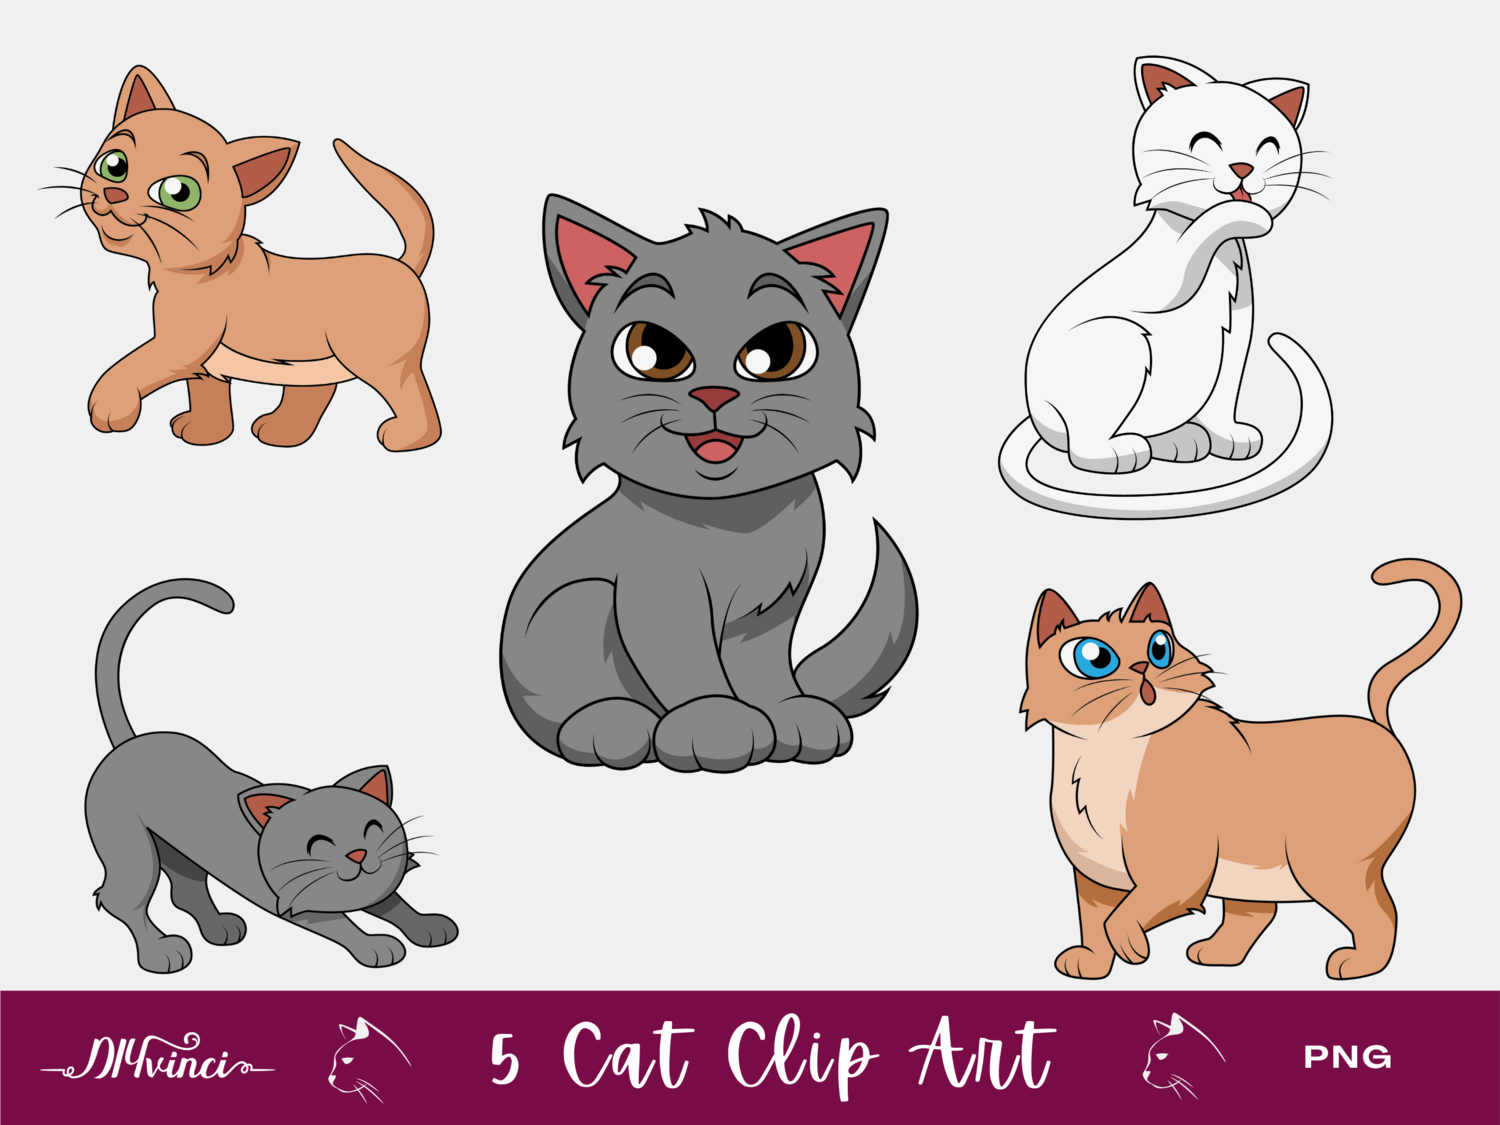 5 Cute Cat Clip Art - PNG - Personal & Commercial Use